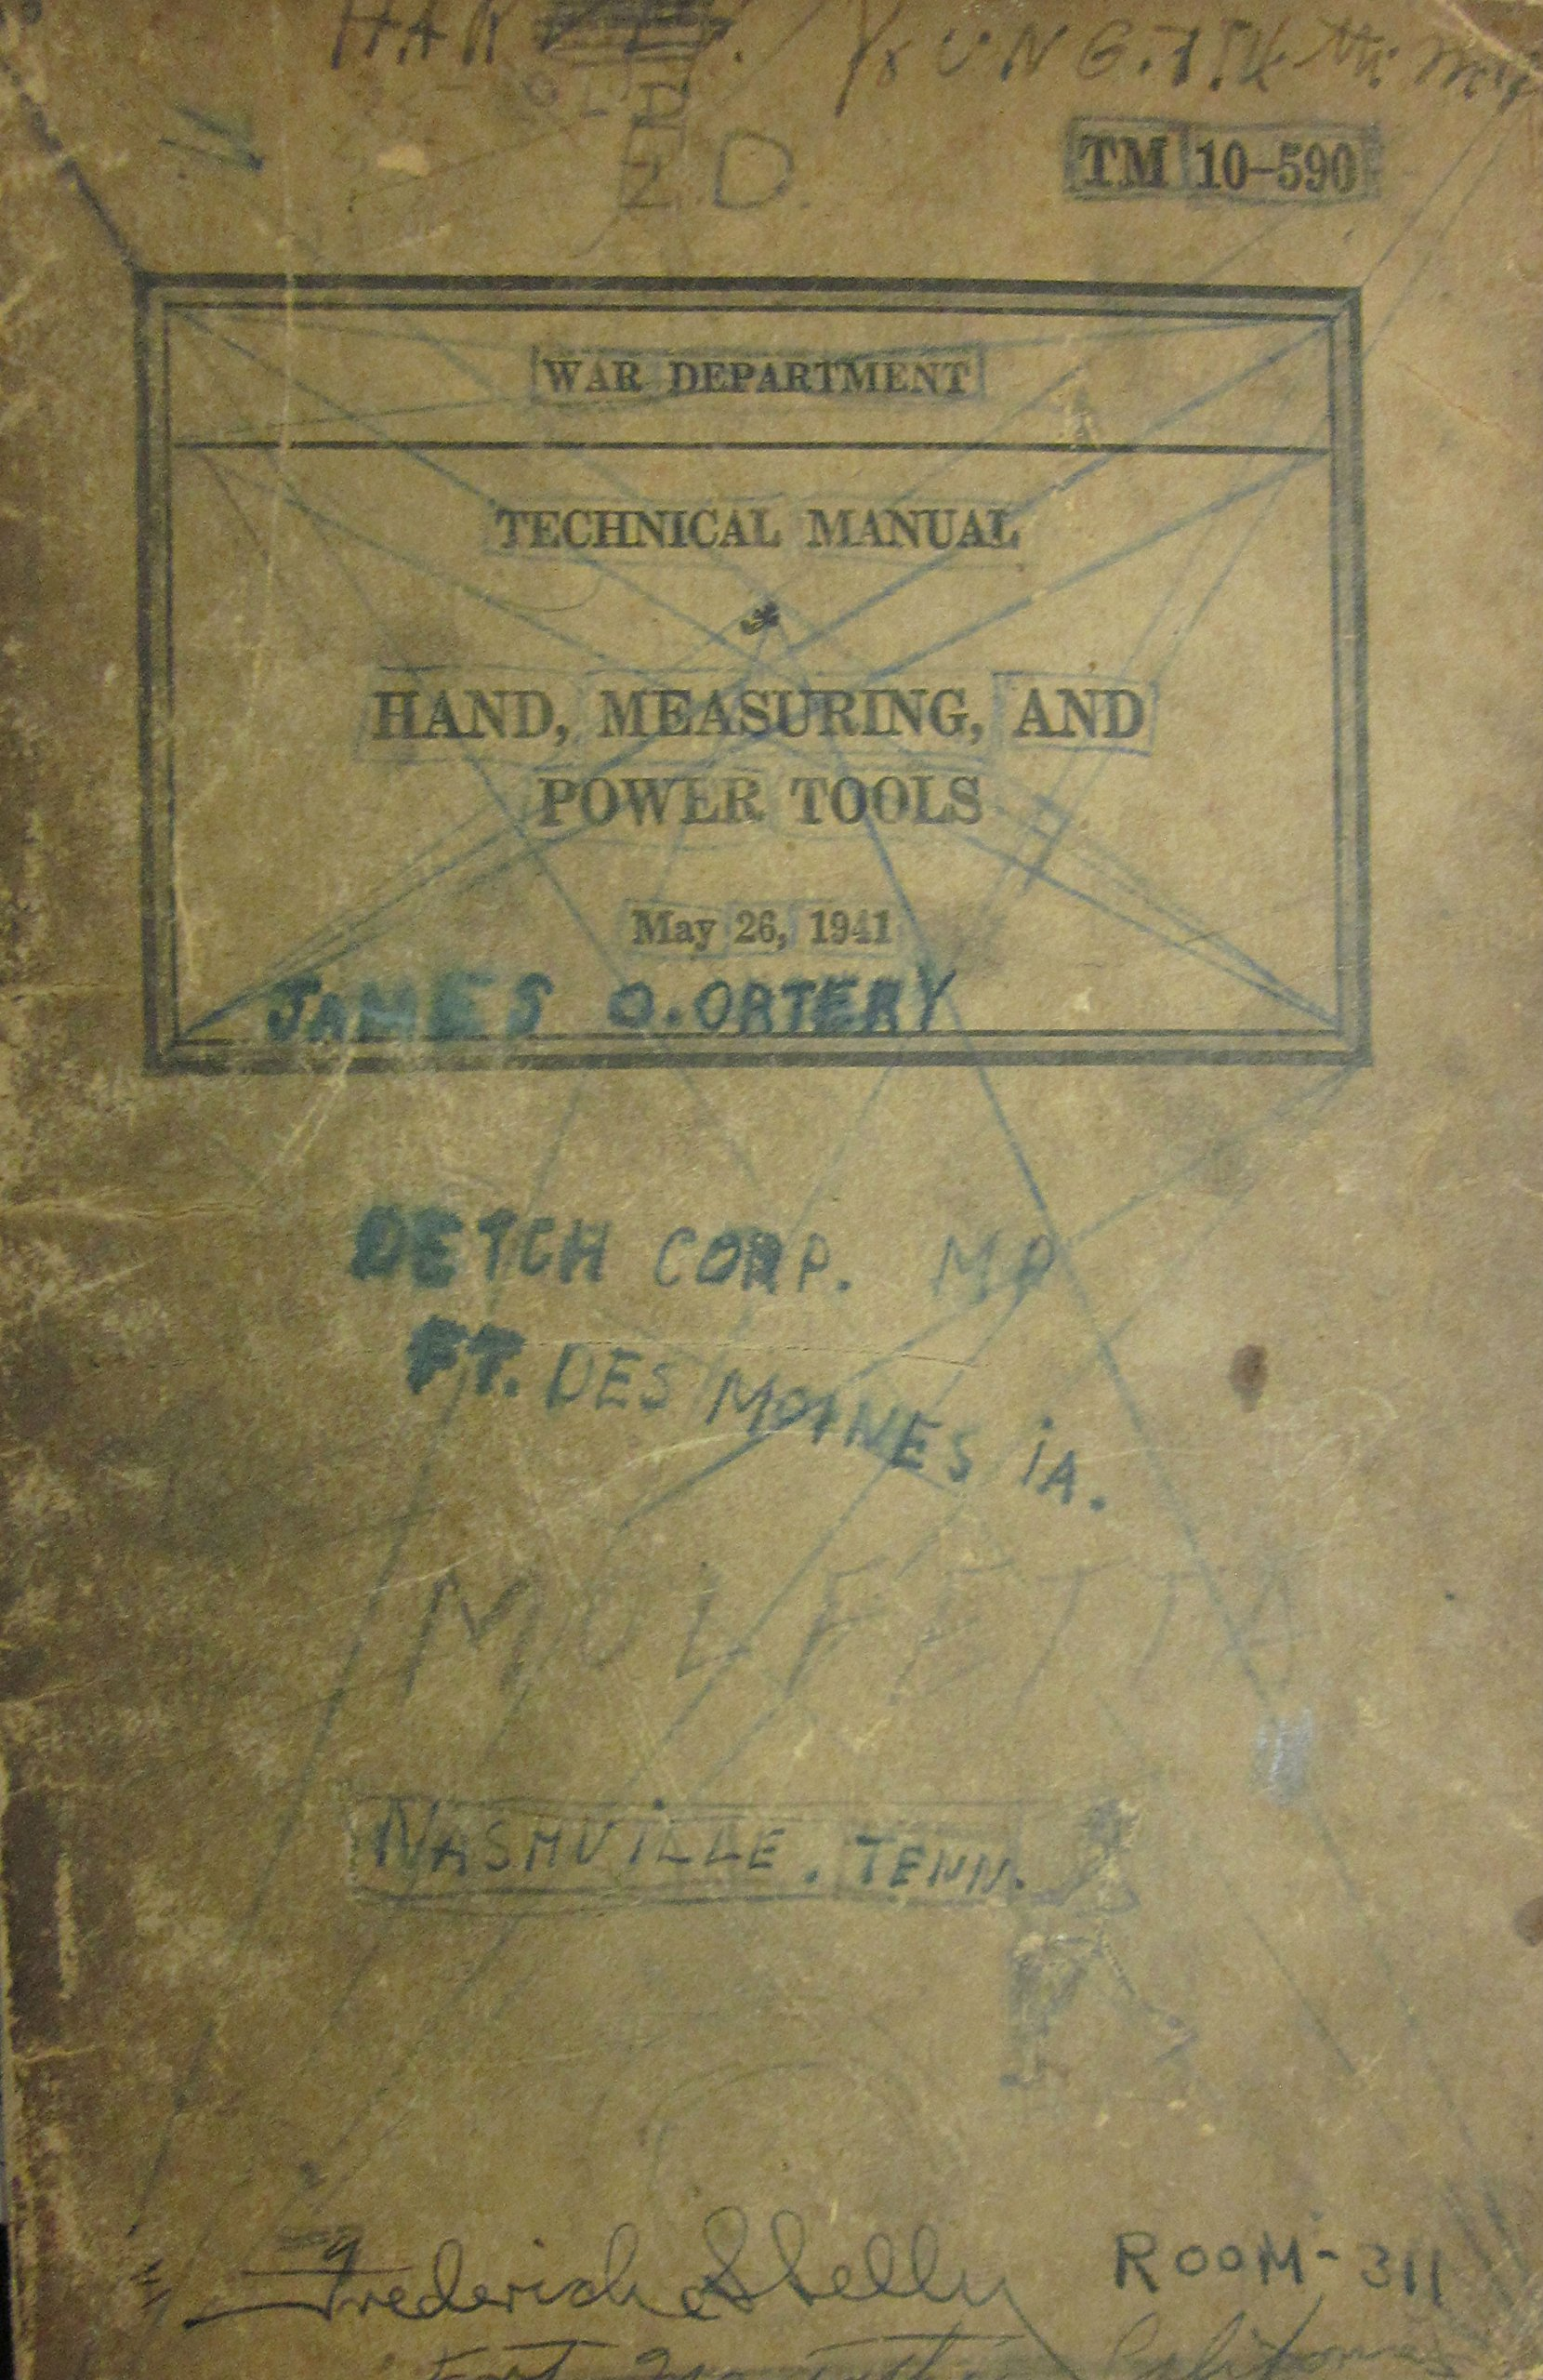 Technical Manual - Hand, Measuring and Power Tools, (War Department, TM 10-590 Dated May 26, 1941)